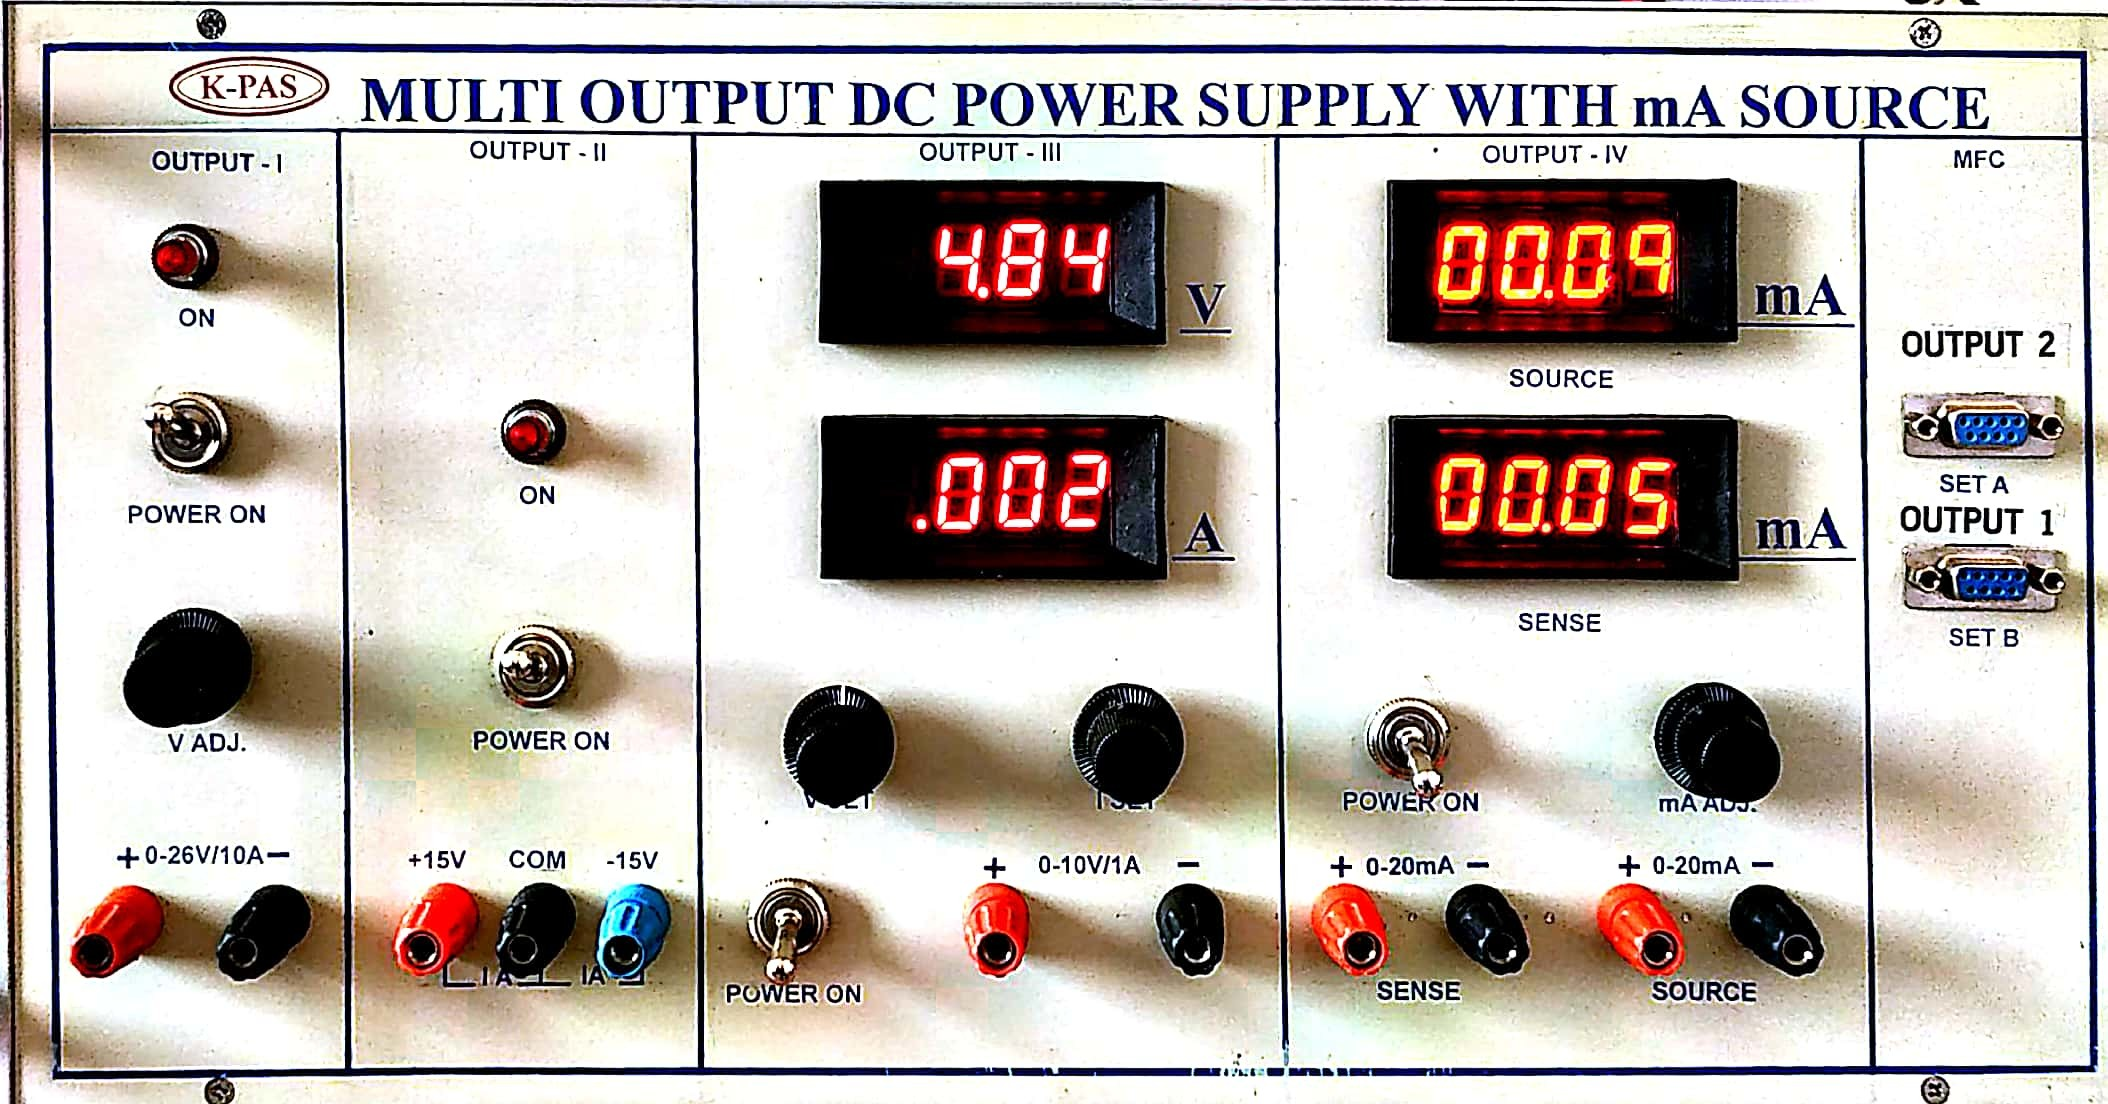 MULTI OUTPUT DC POWER SUPPLY WITH mA SOURCE